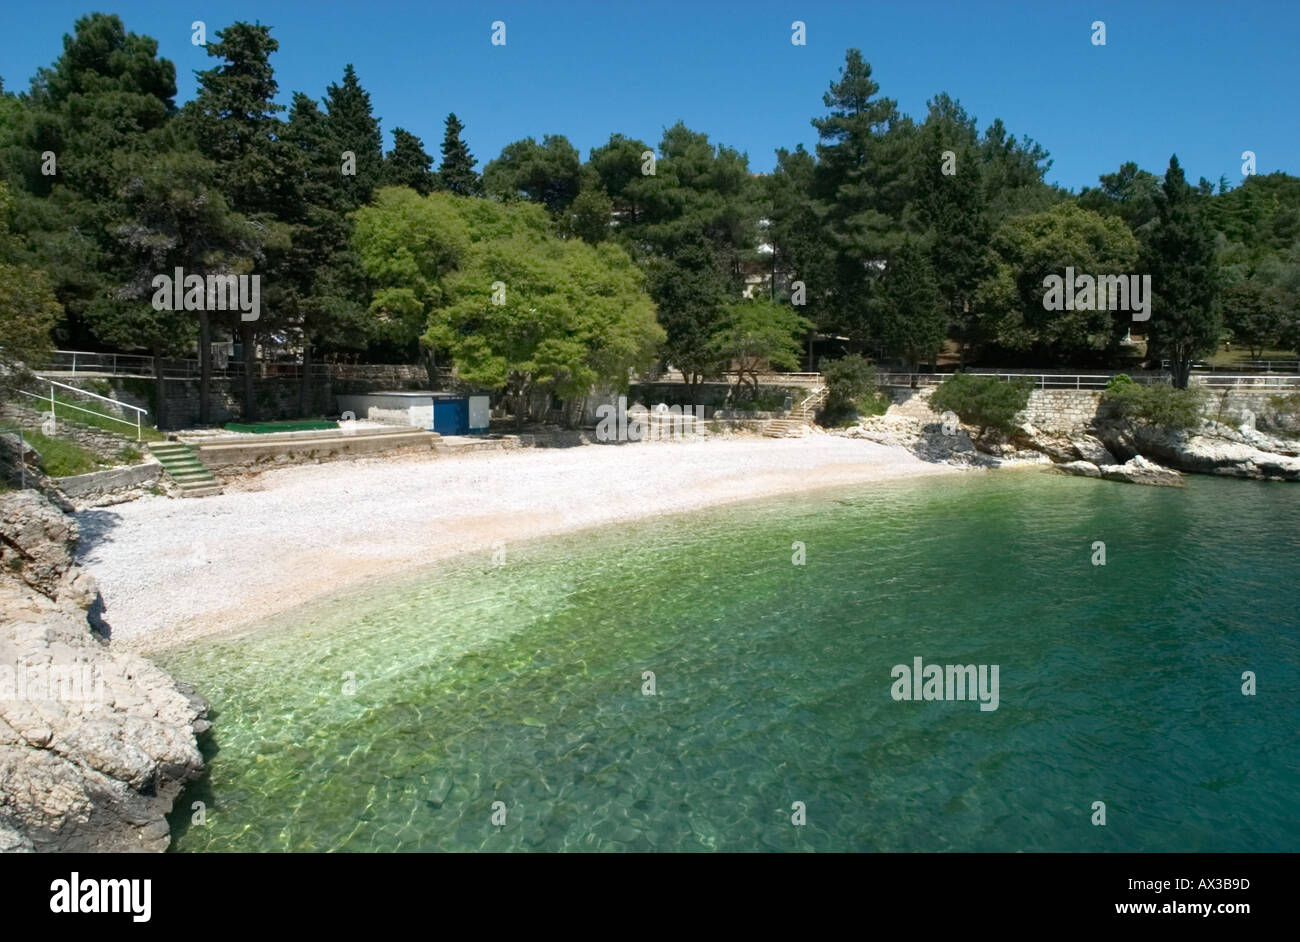 Beach in the Hotel District, Rabac, Istria, Croatia - Stock Image